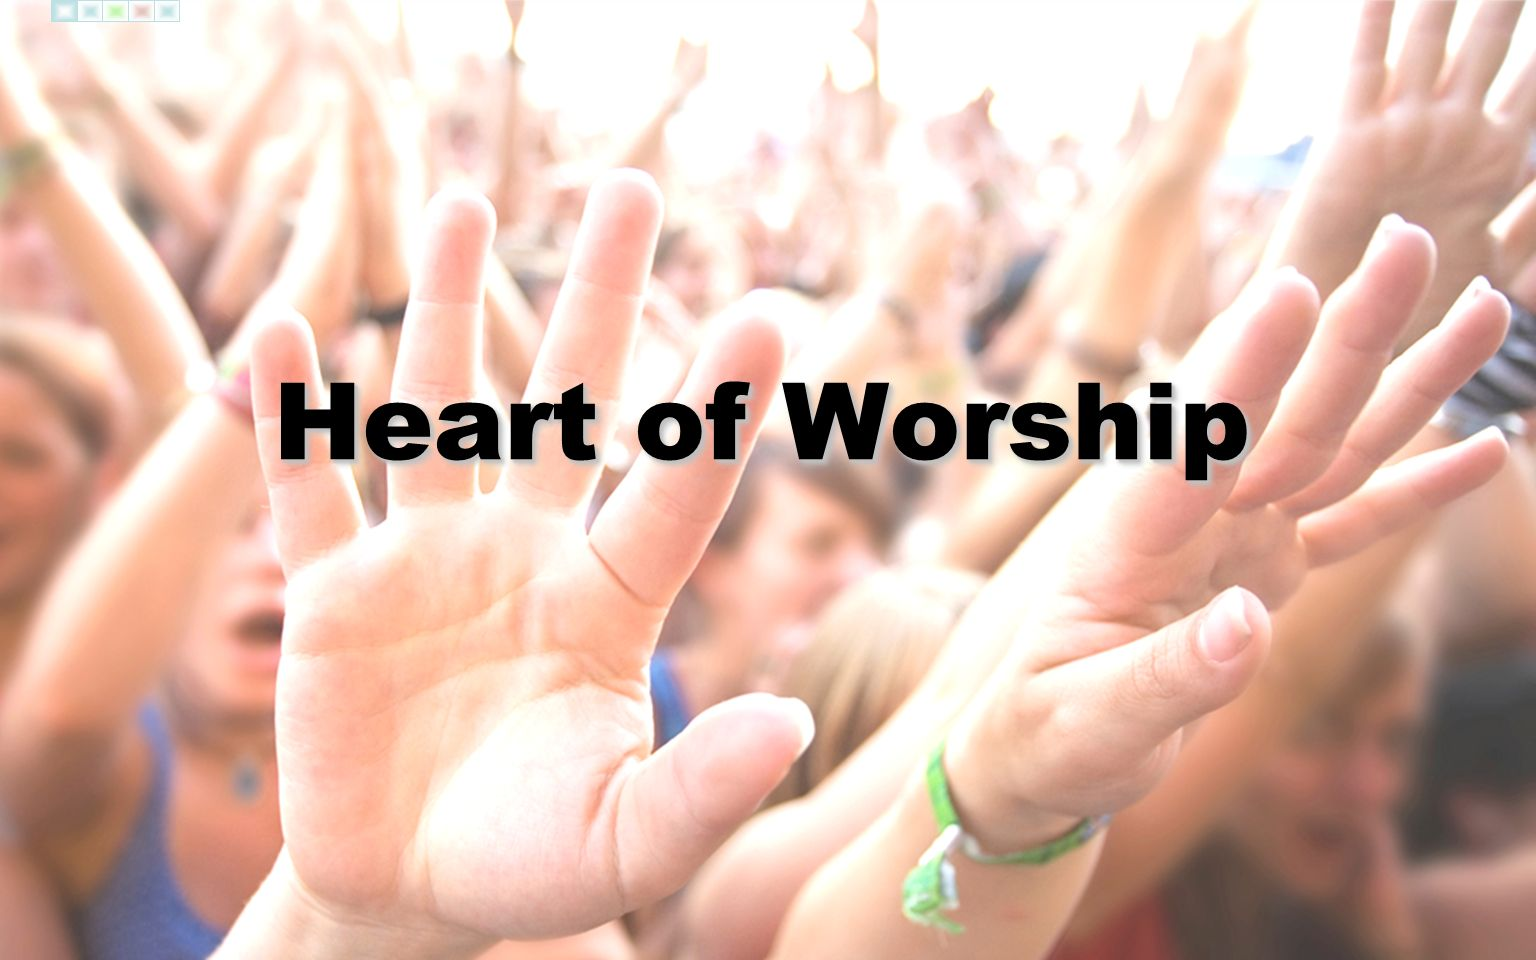 Heart of Worship